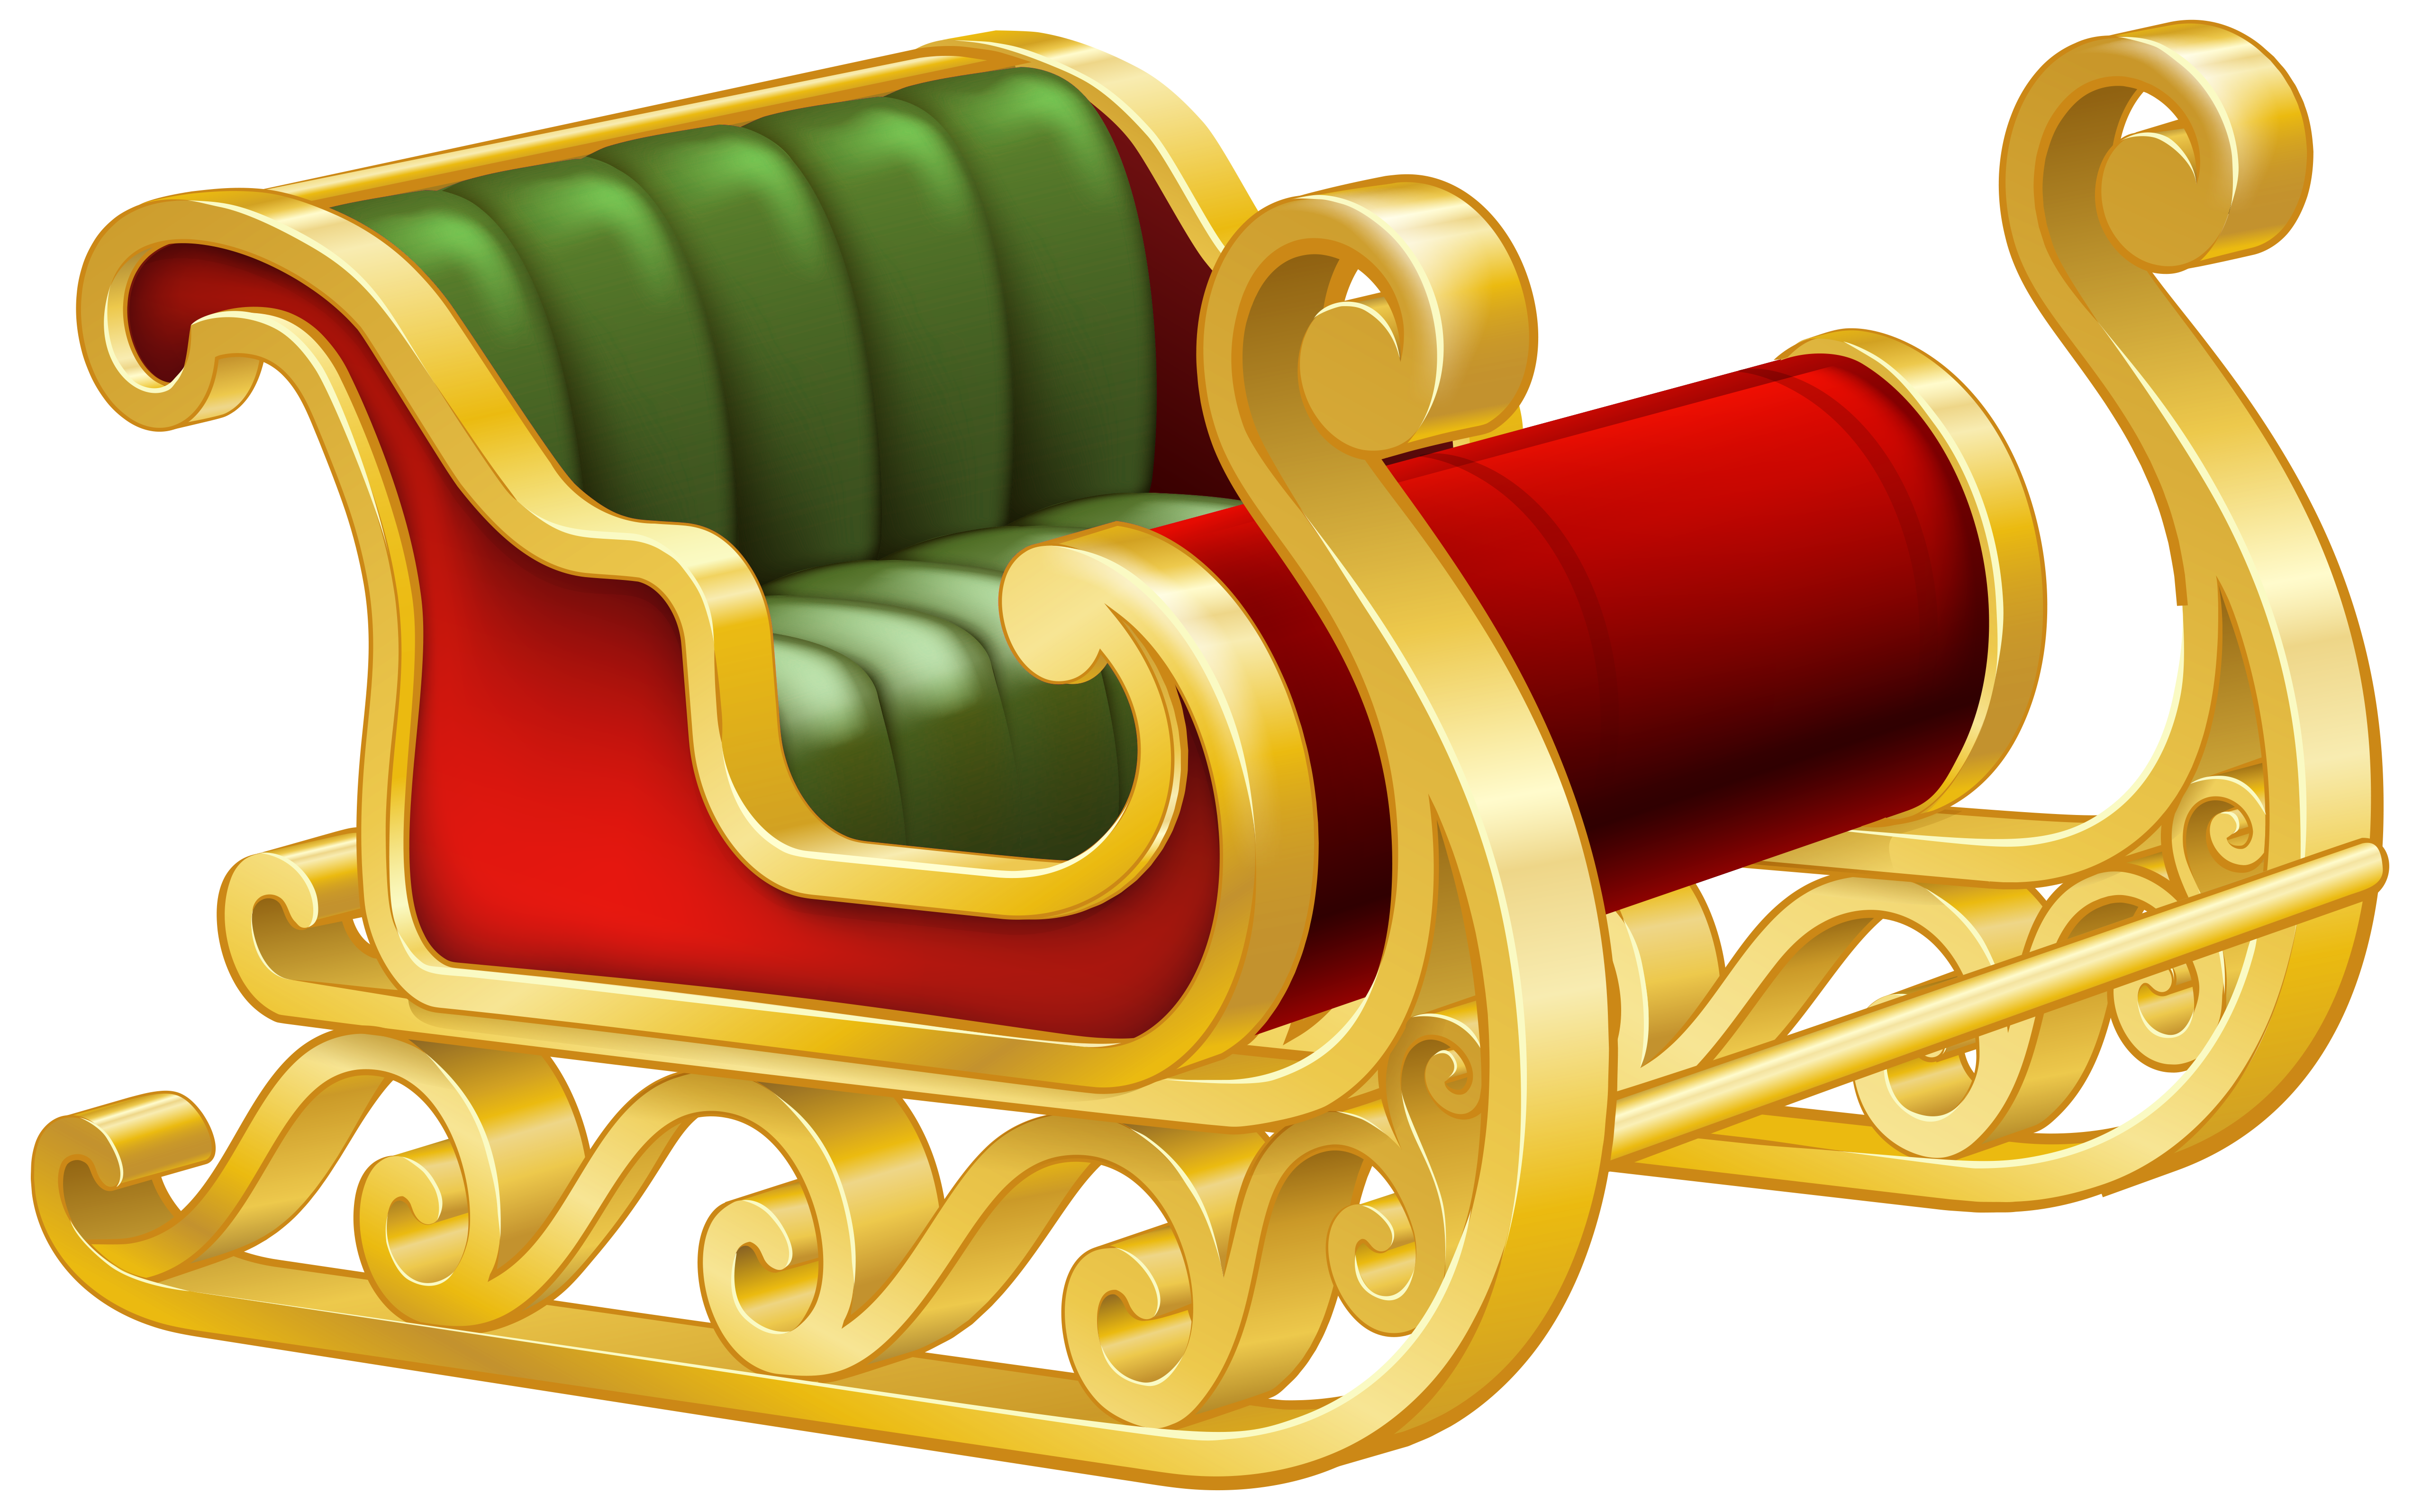 Sleigh pictures clipart banner transparent download Santa Sleigh PNG Clip Art Image | Gallery Yopriceville - High ... banner transparent download